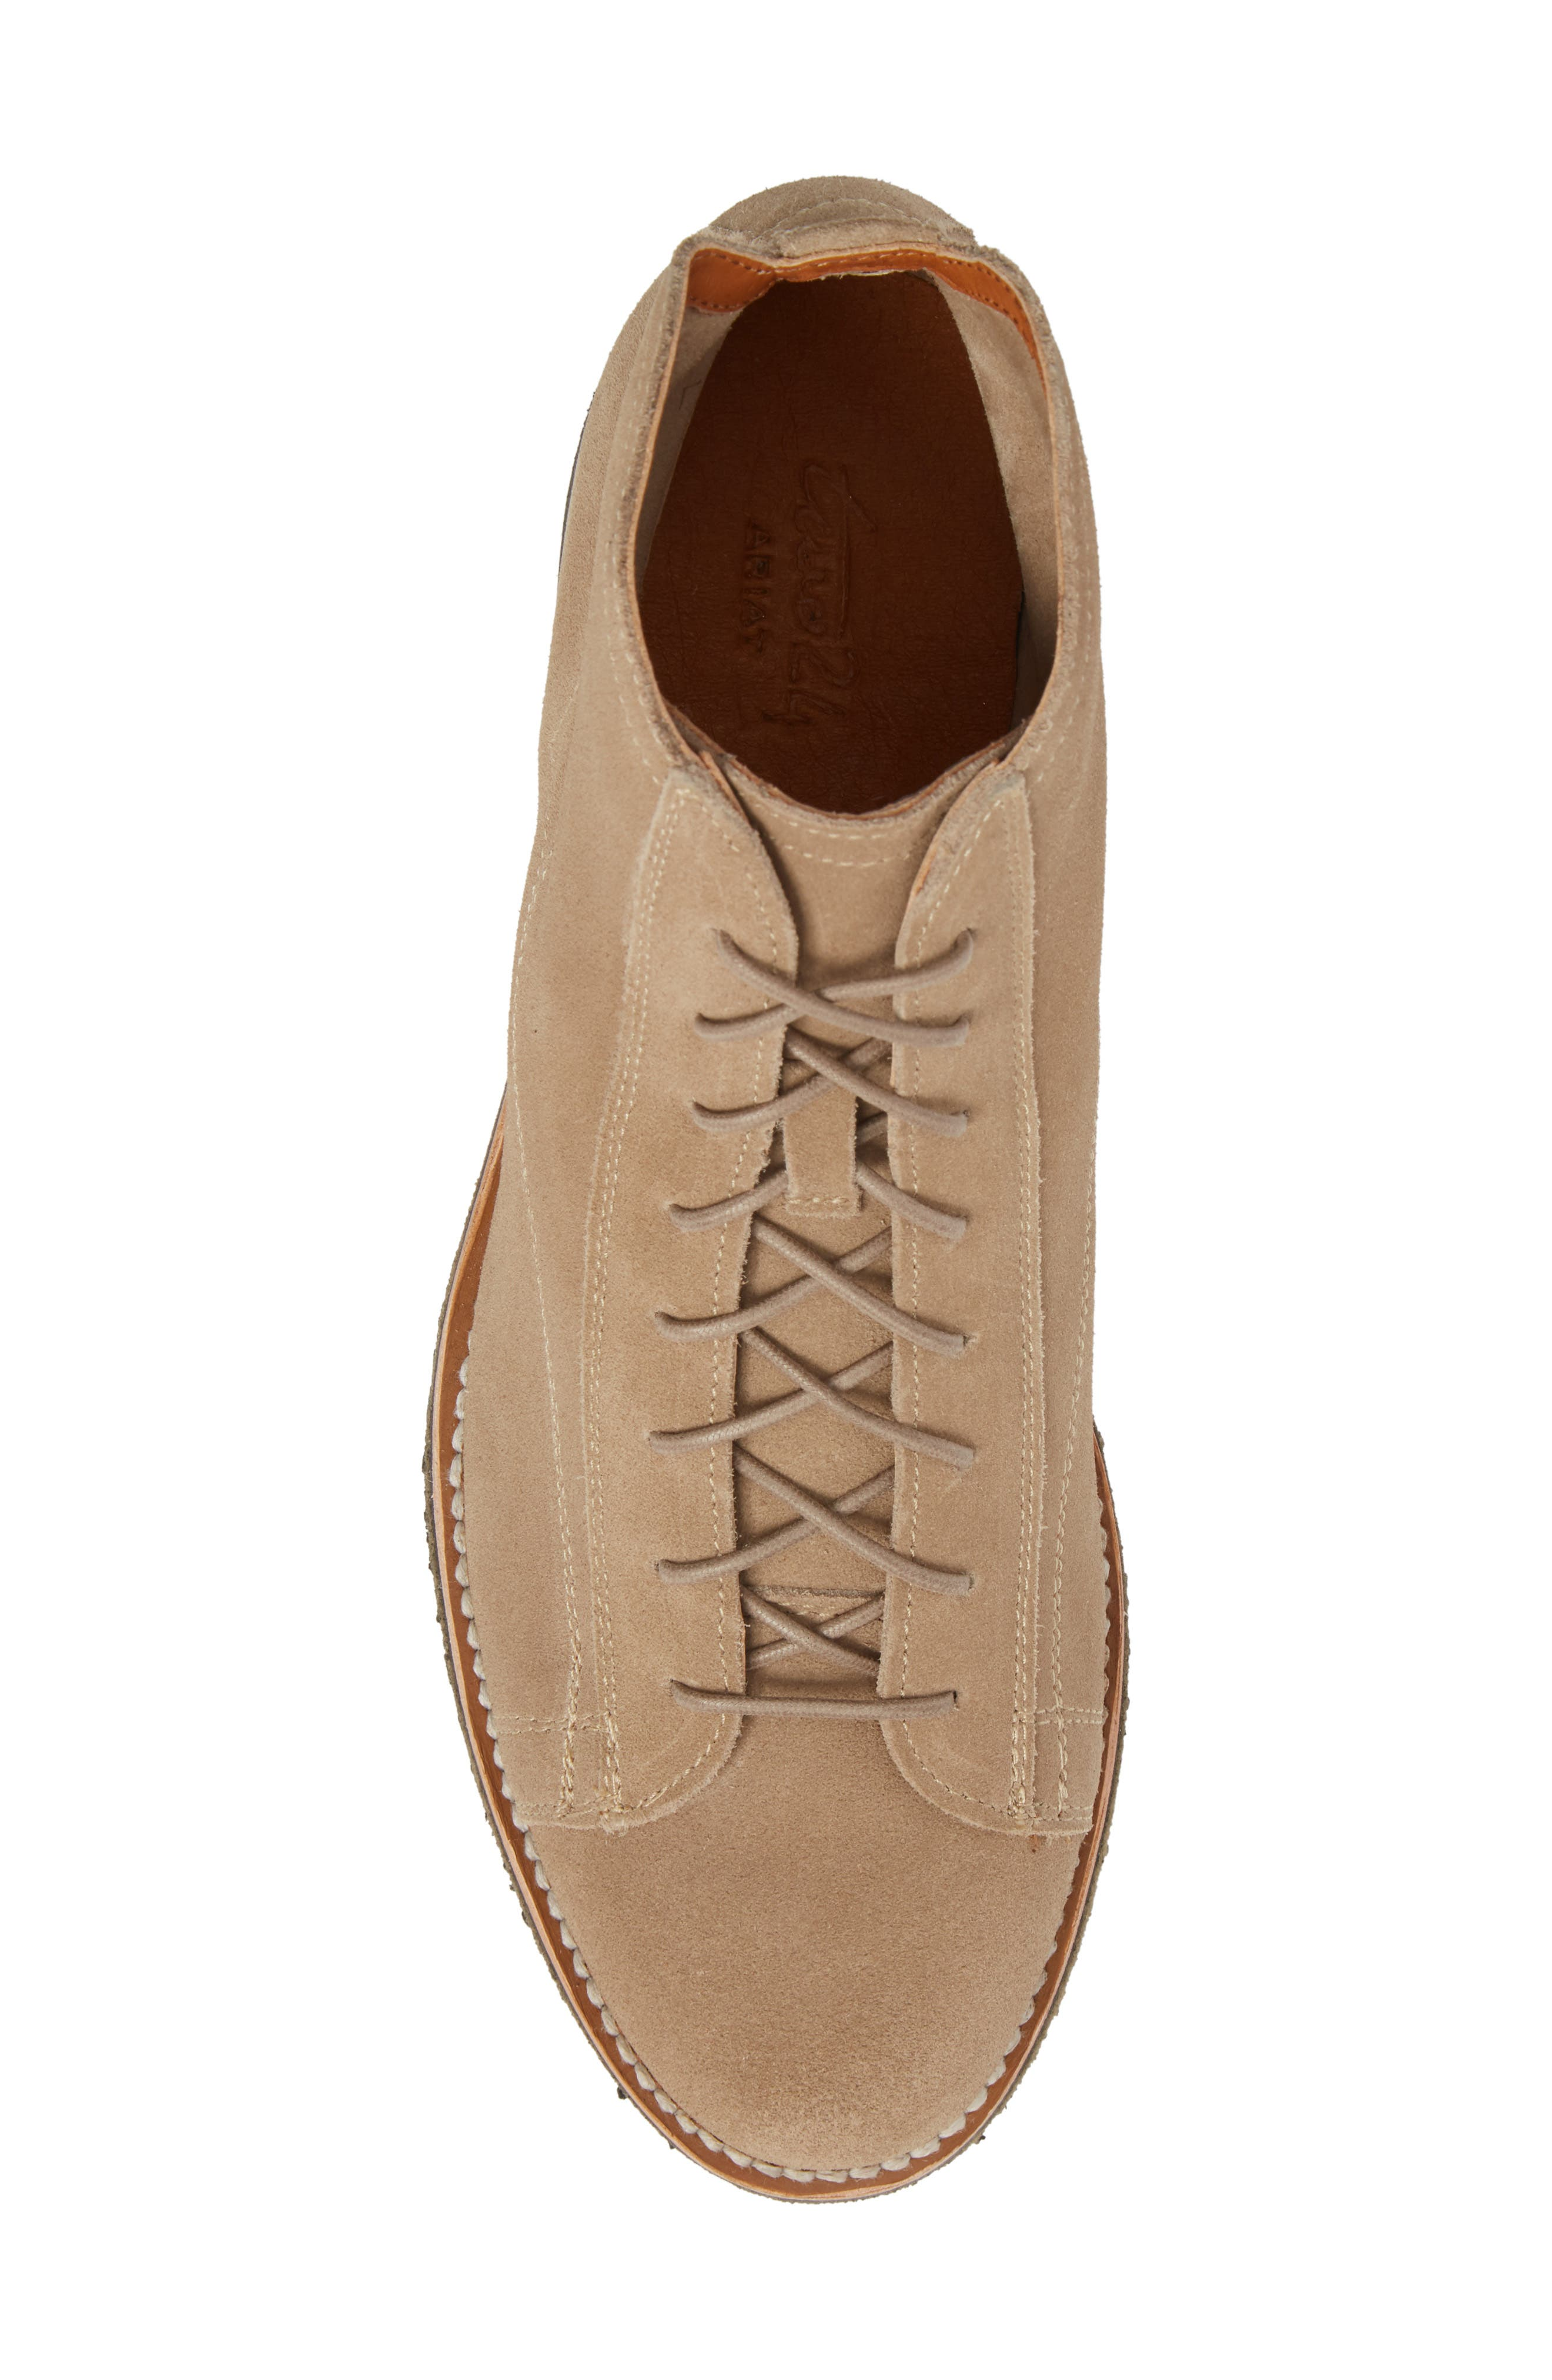 Two24 by Ariat Webster Boot,                             Alternate thumbnail 5, color,                             Biscotti Suede